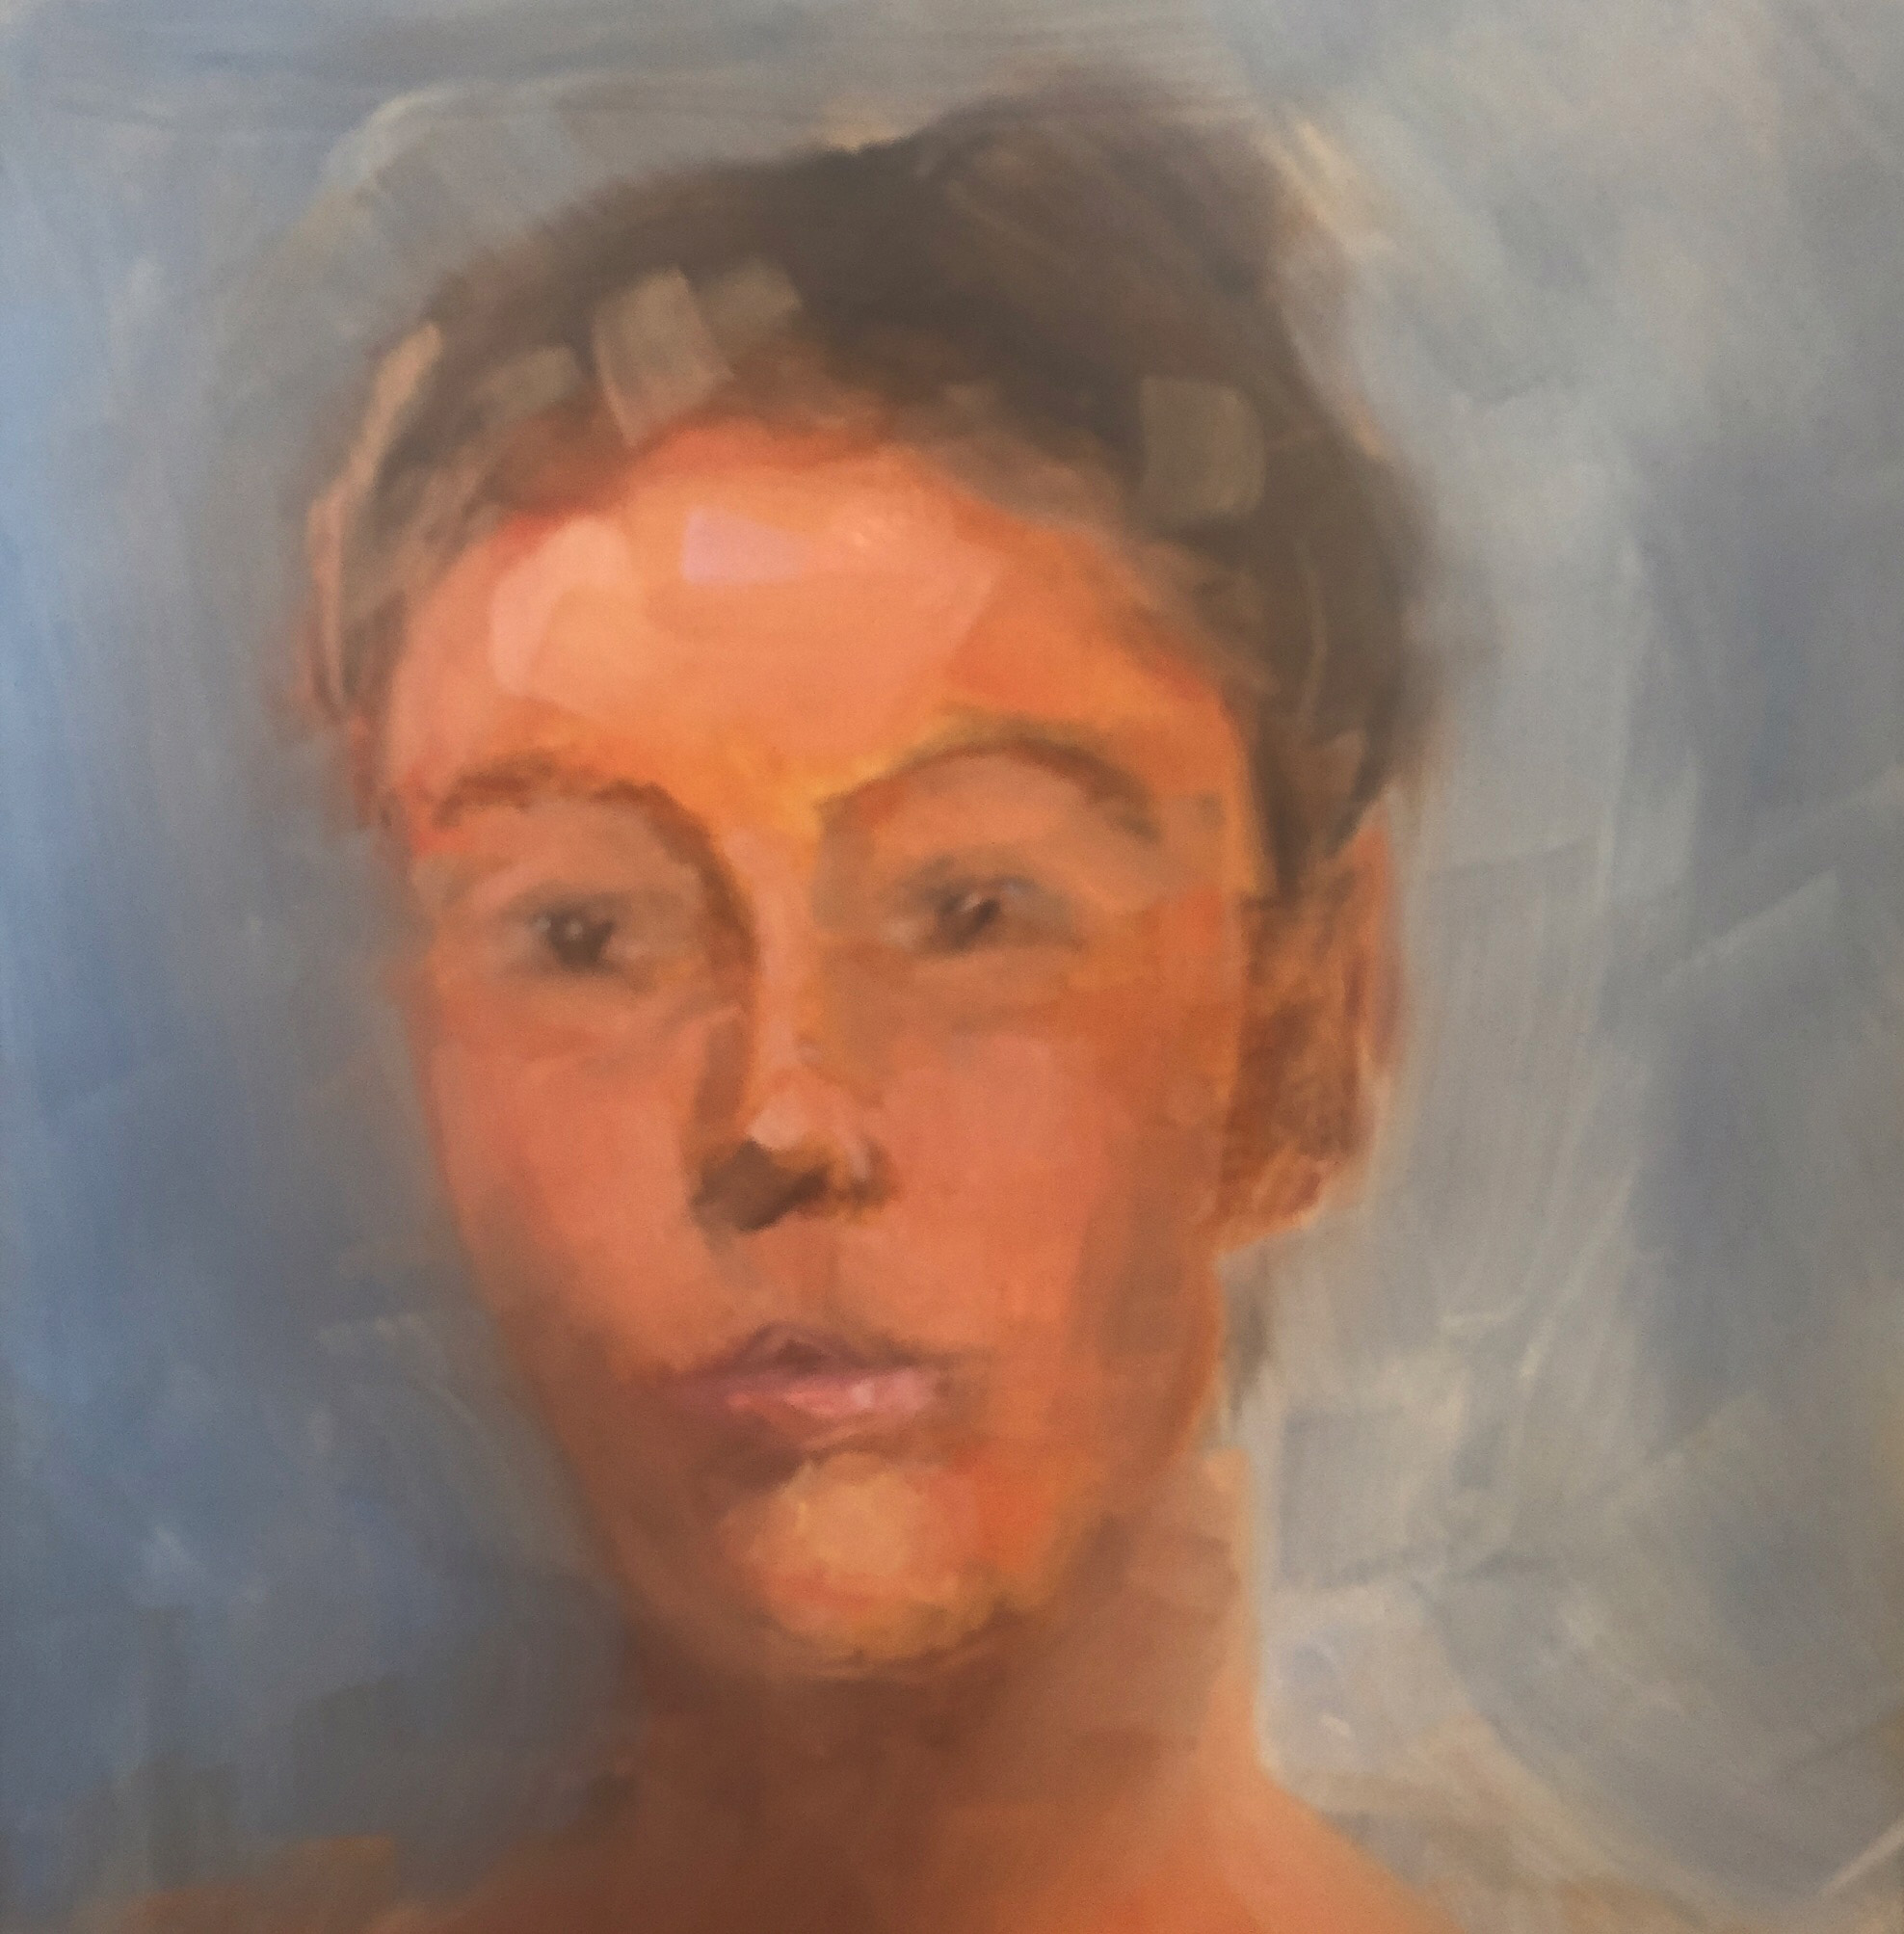 """Geoff Watson, """"Amy,"""" June daily painting #23, oil on panel, 11"""" x 14,"""" 2019."""